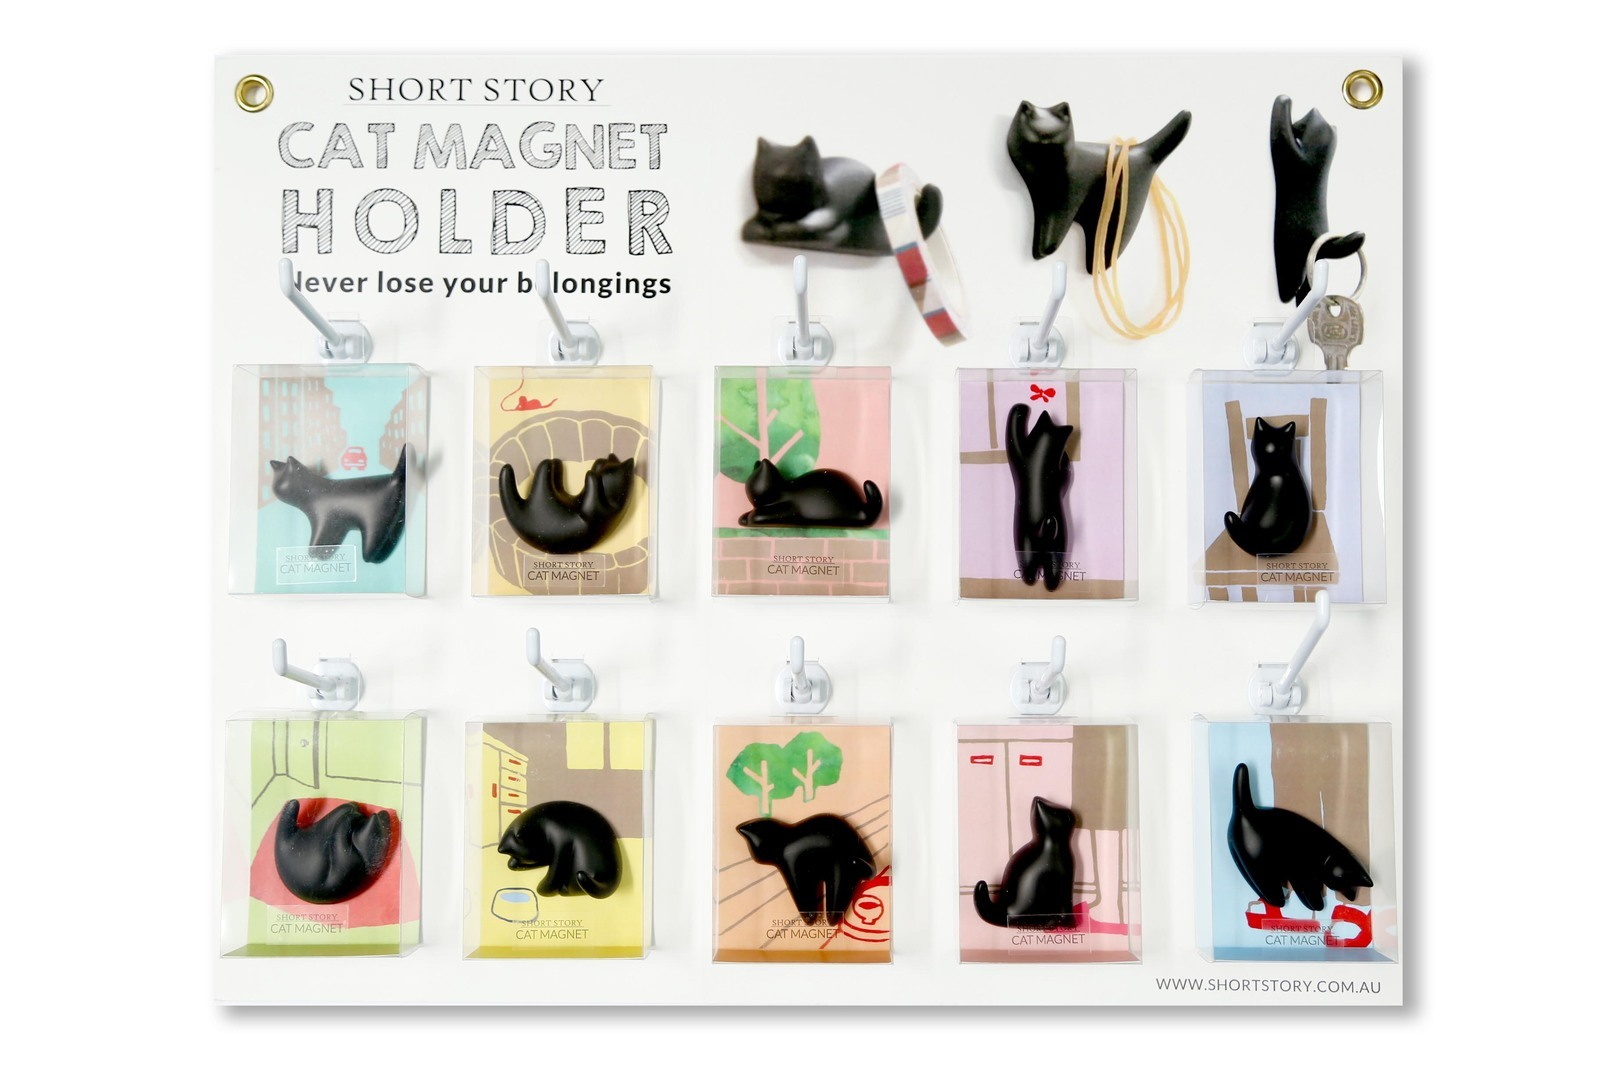 Short Story: Cat Magnet - Snuggly image